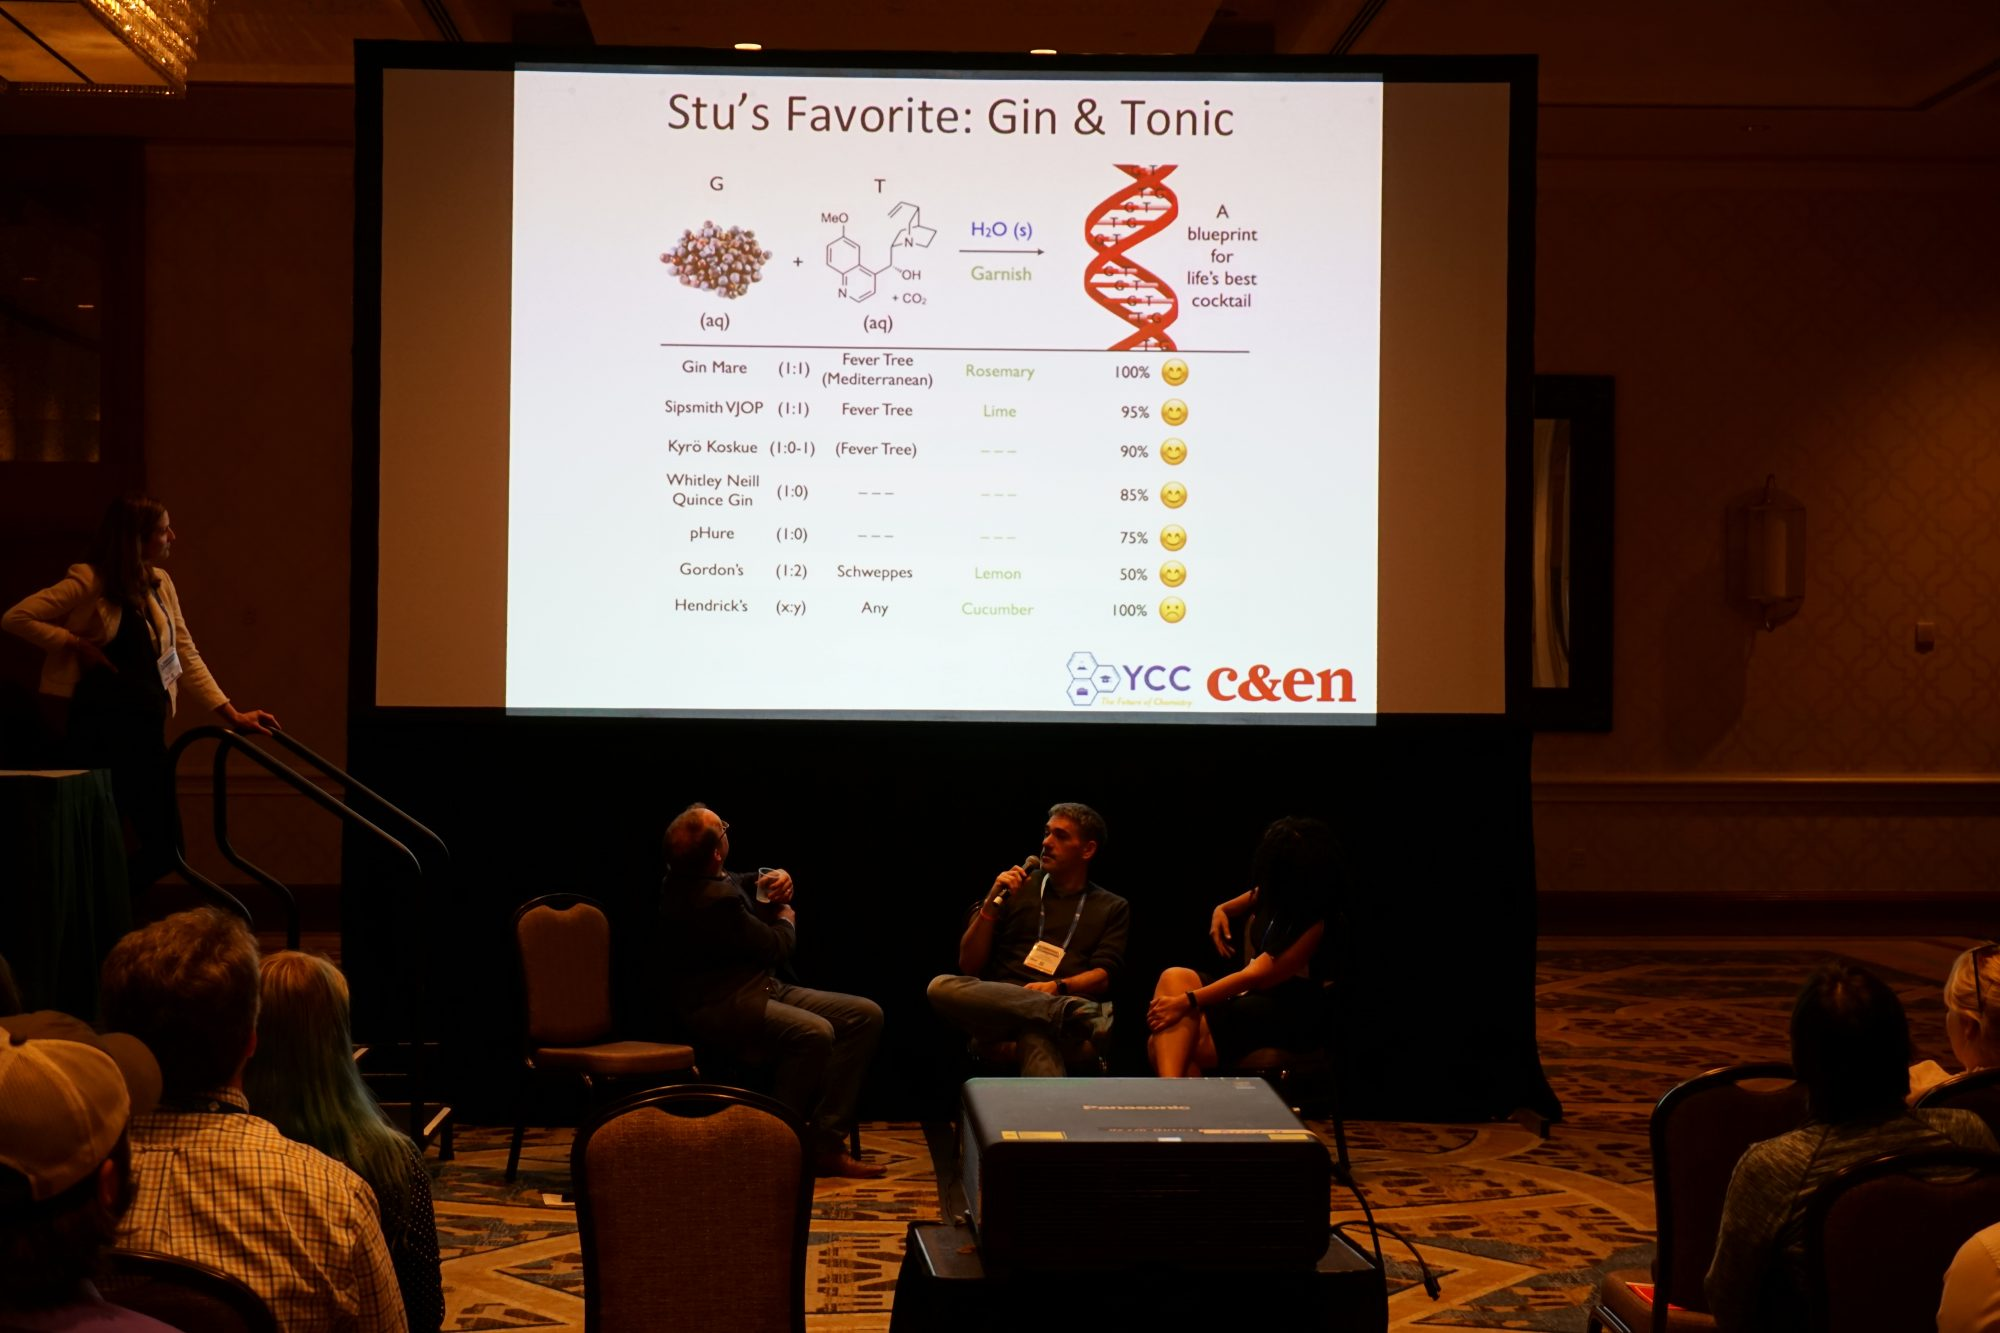 2018 NOLA C&EN Cocktails Symposia